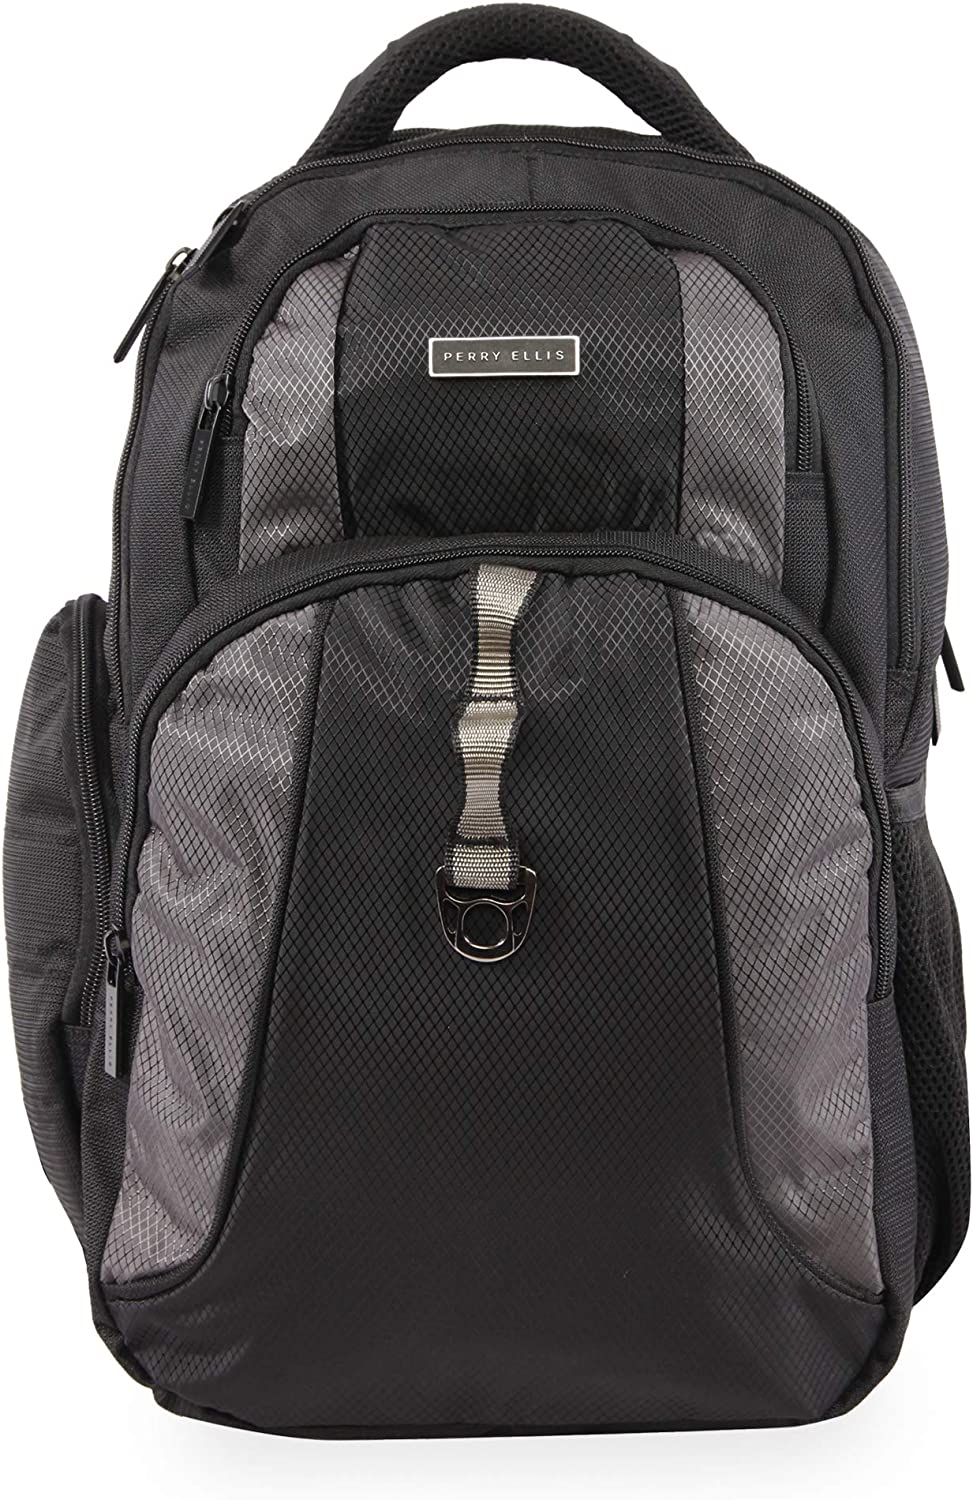 Perry Ellis P14 Business Laptop Backpack, Black, One Size